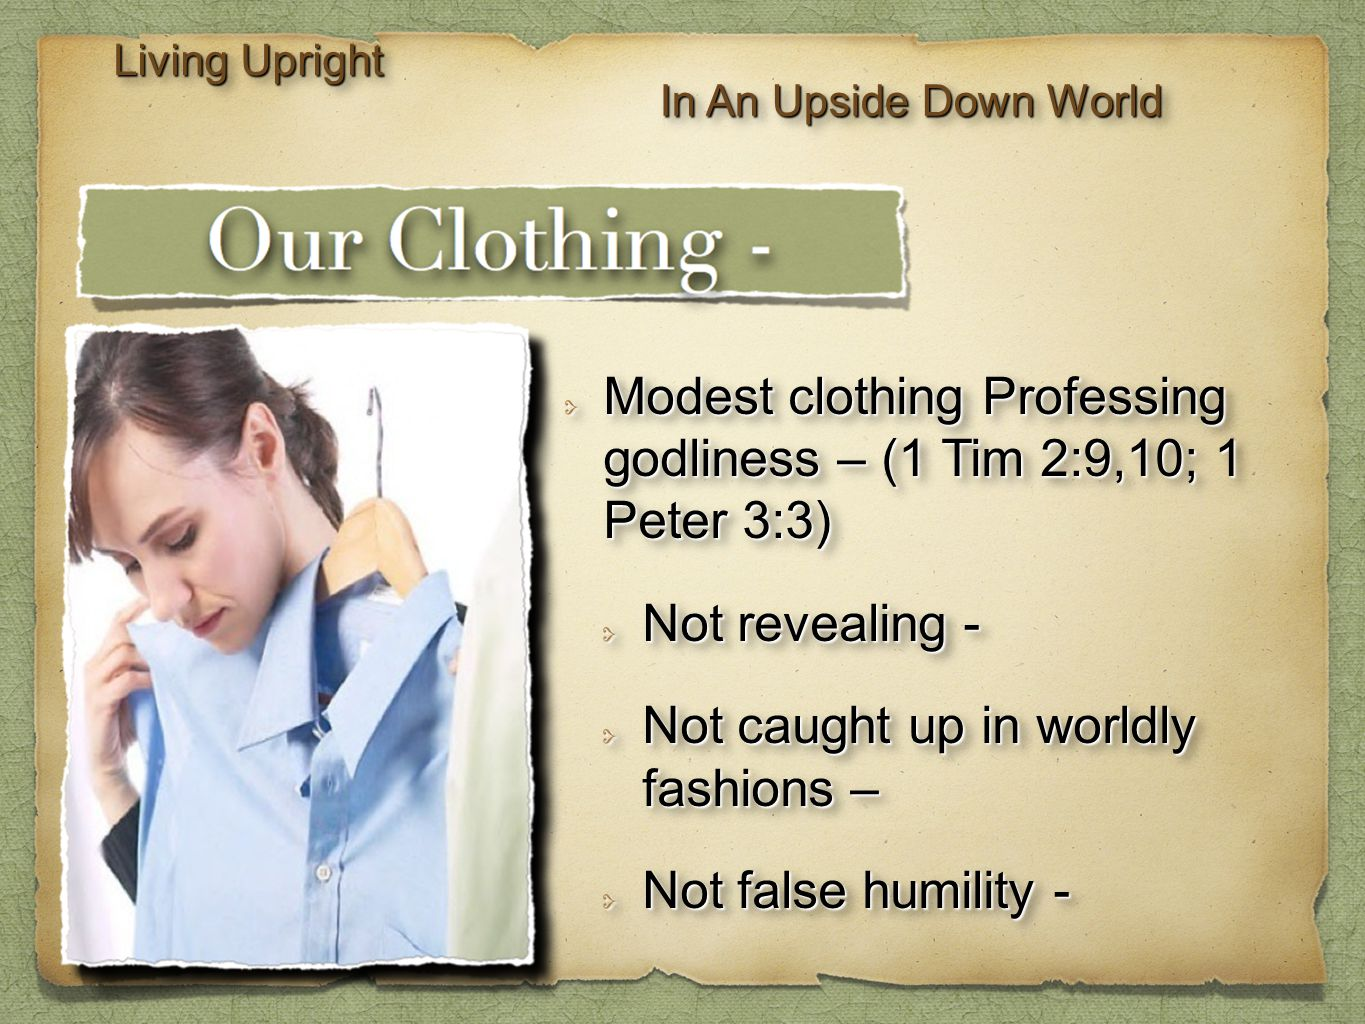 Living Upright In An Upside Down World Modest clothing Professing godliness – (1 Tim 2:9,10; 1 Peter 3:3) Not revealing - Not caught up in worldly fashions – Not false humility - Modest clothing Professing godliness – (1 Tim 2:9,10; 1 Peter 3:3) Not revealing - Not caught up in worldly fashions – Not false humility -